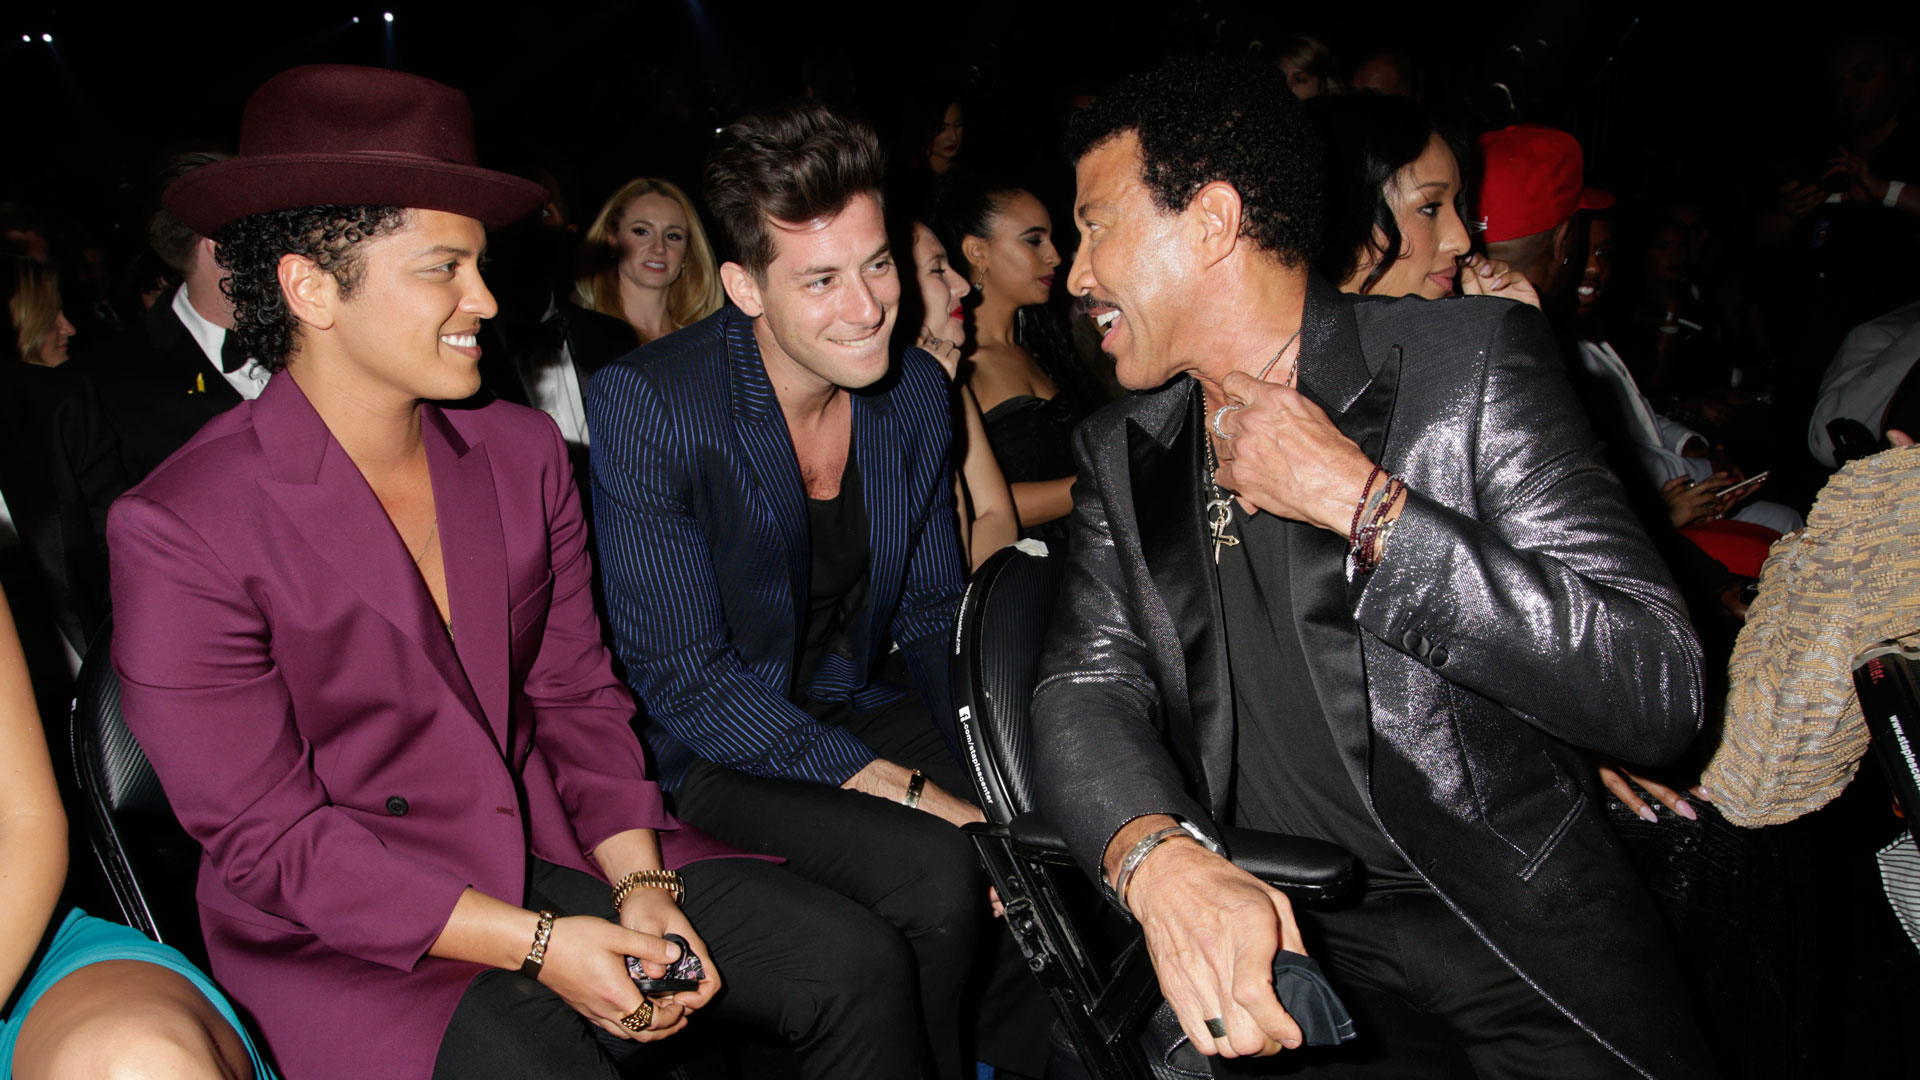 Bruno Mars, Mark Ronson, and Lionel Richie share some laughs in the audience